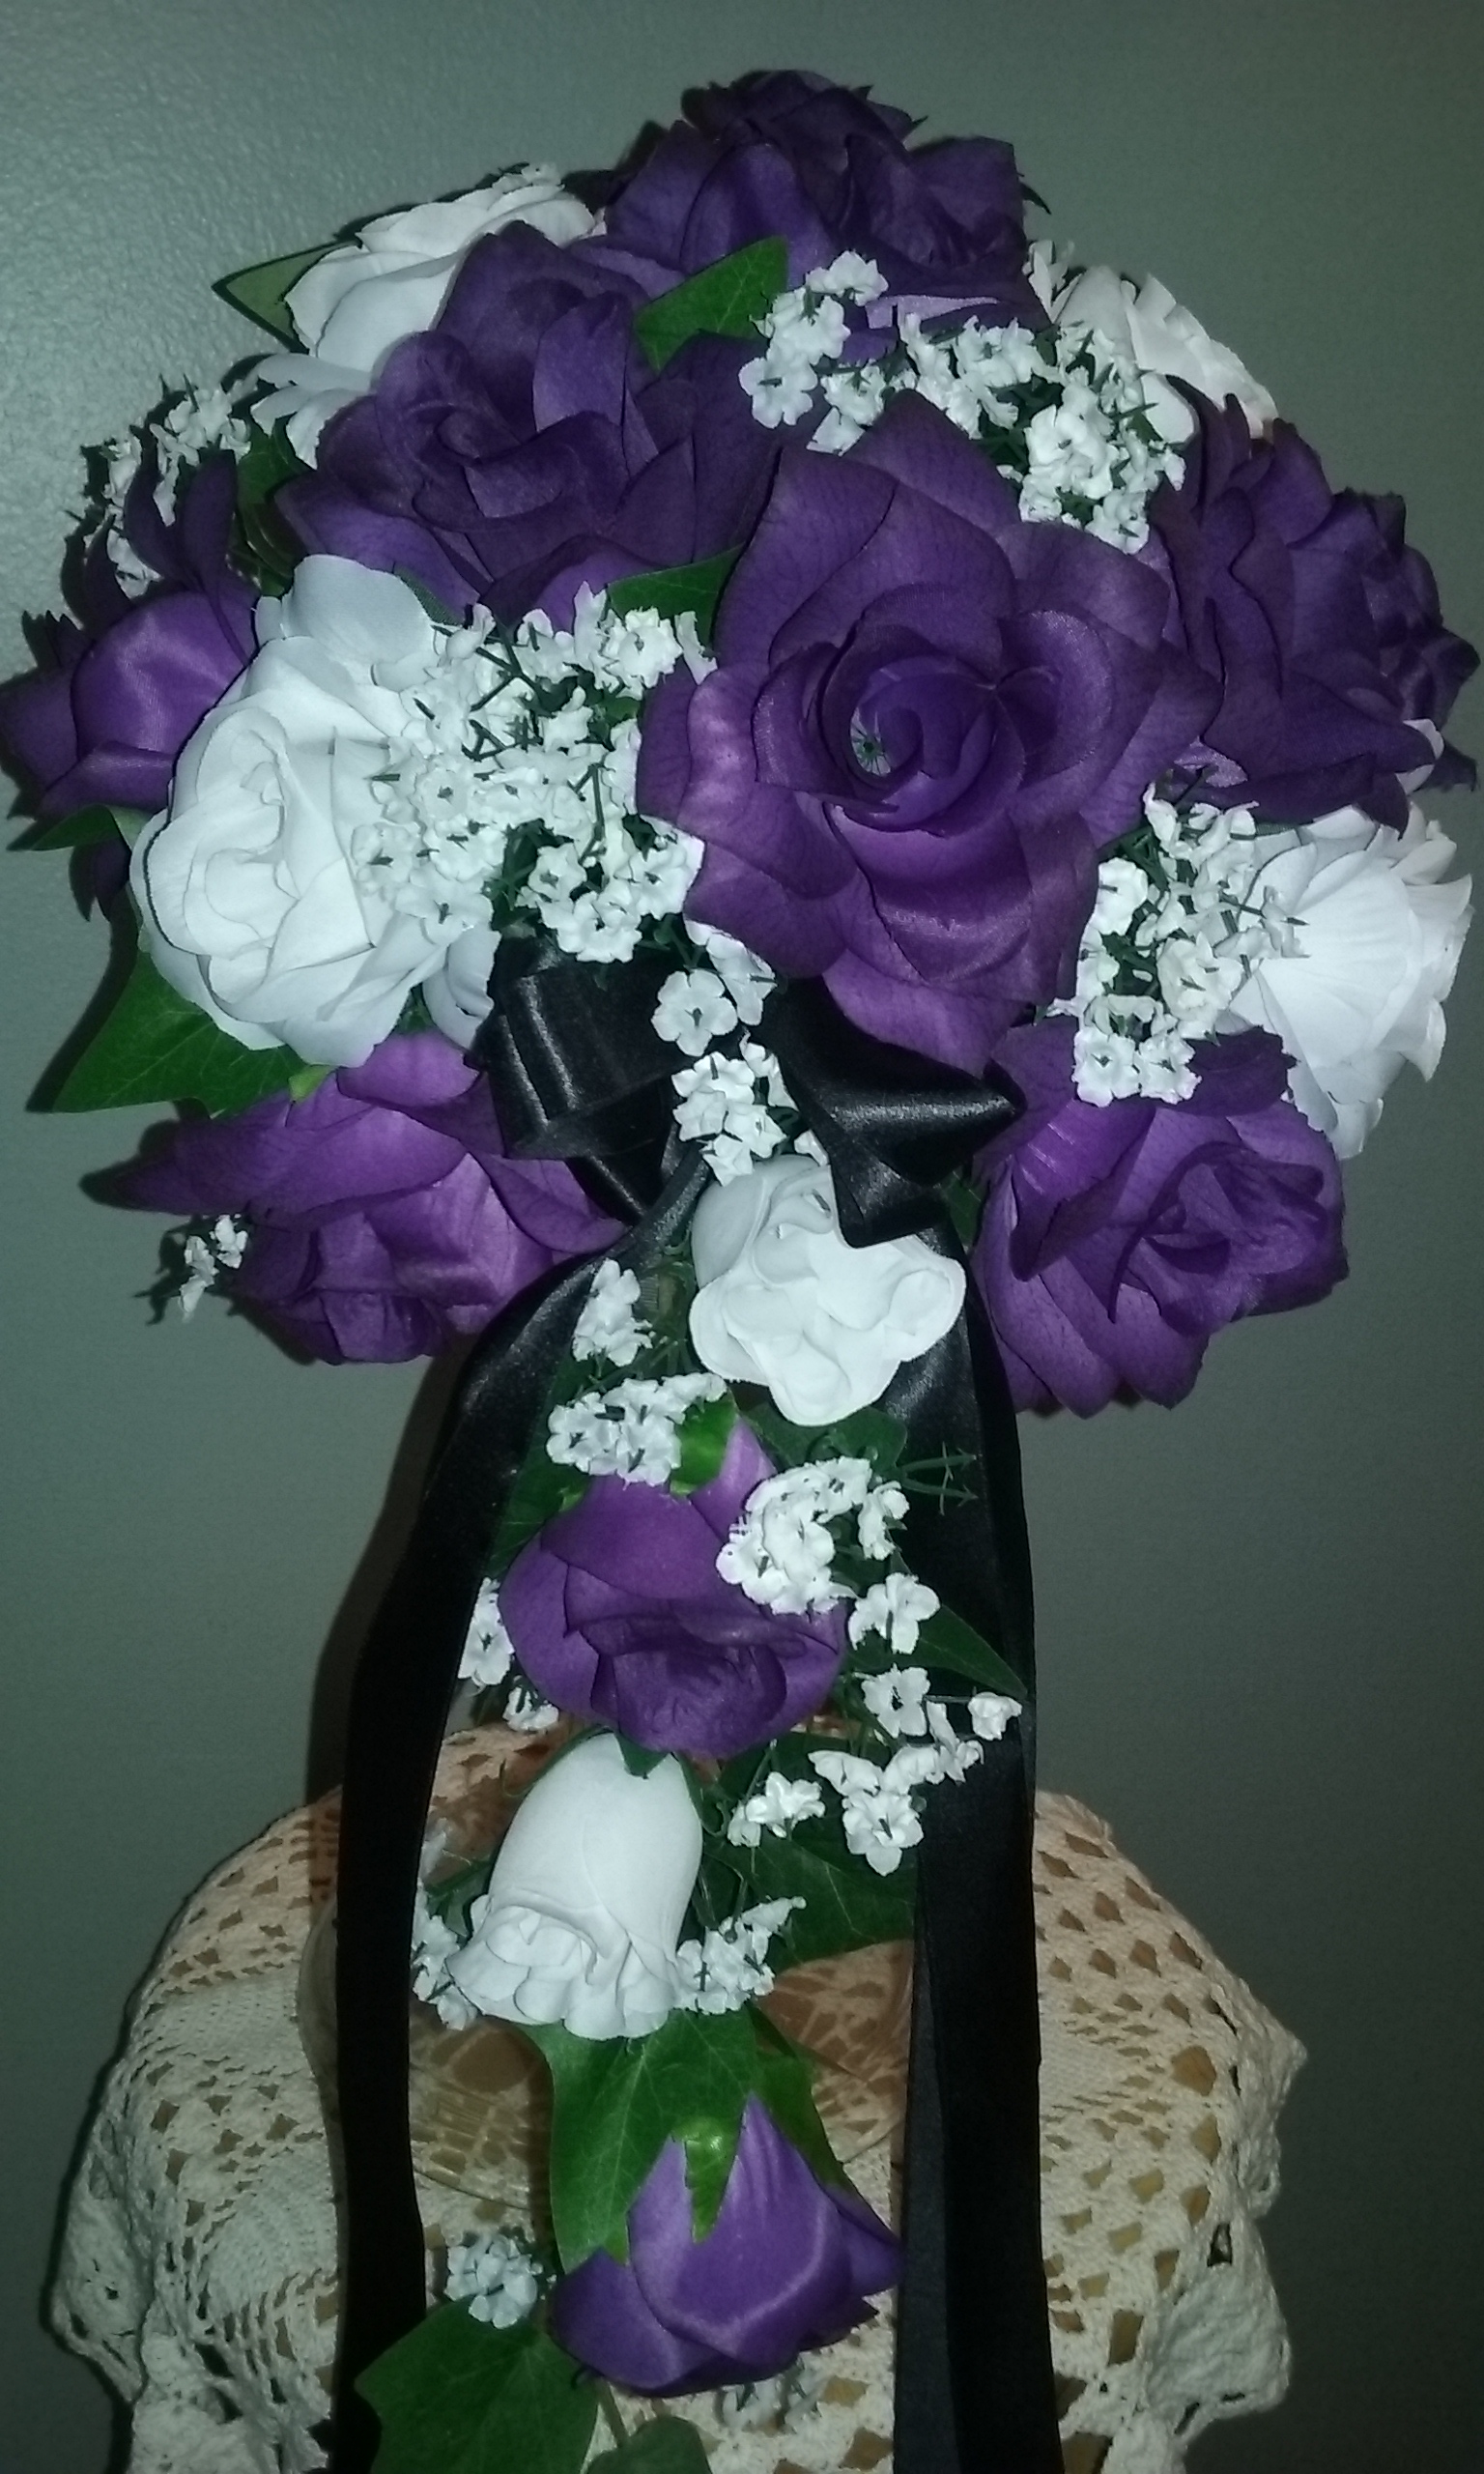 Silk Wedding Package Deal I Made With Purple And White Roses Baby S Breath And Greens Col Cheap Wedding Packages Cheap Wedding Bouquets Silk Bridal Bouquet